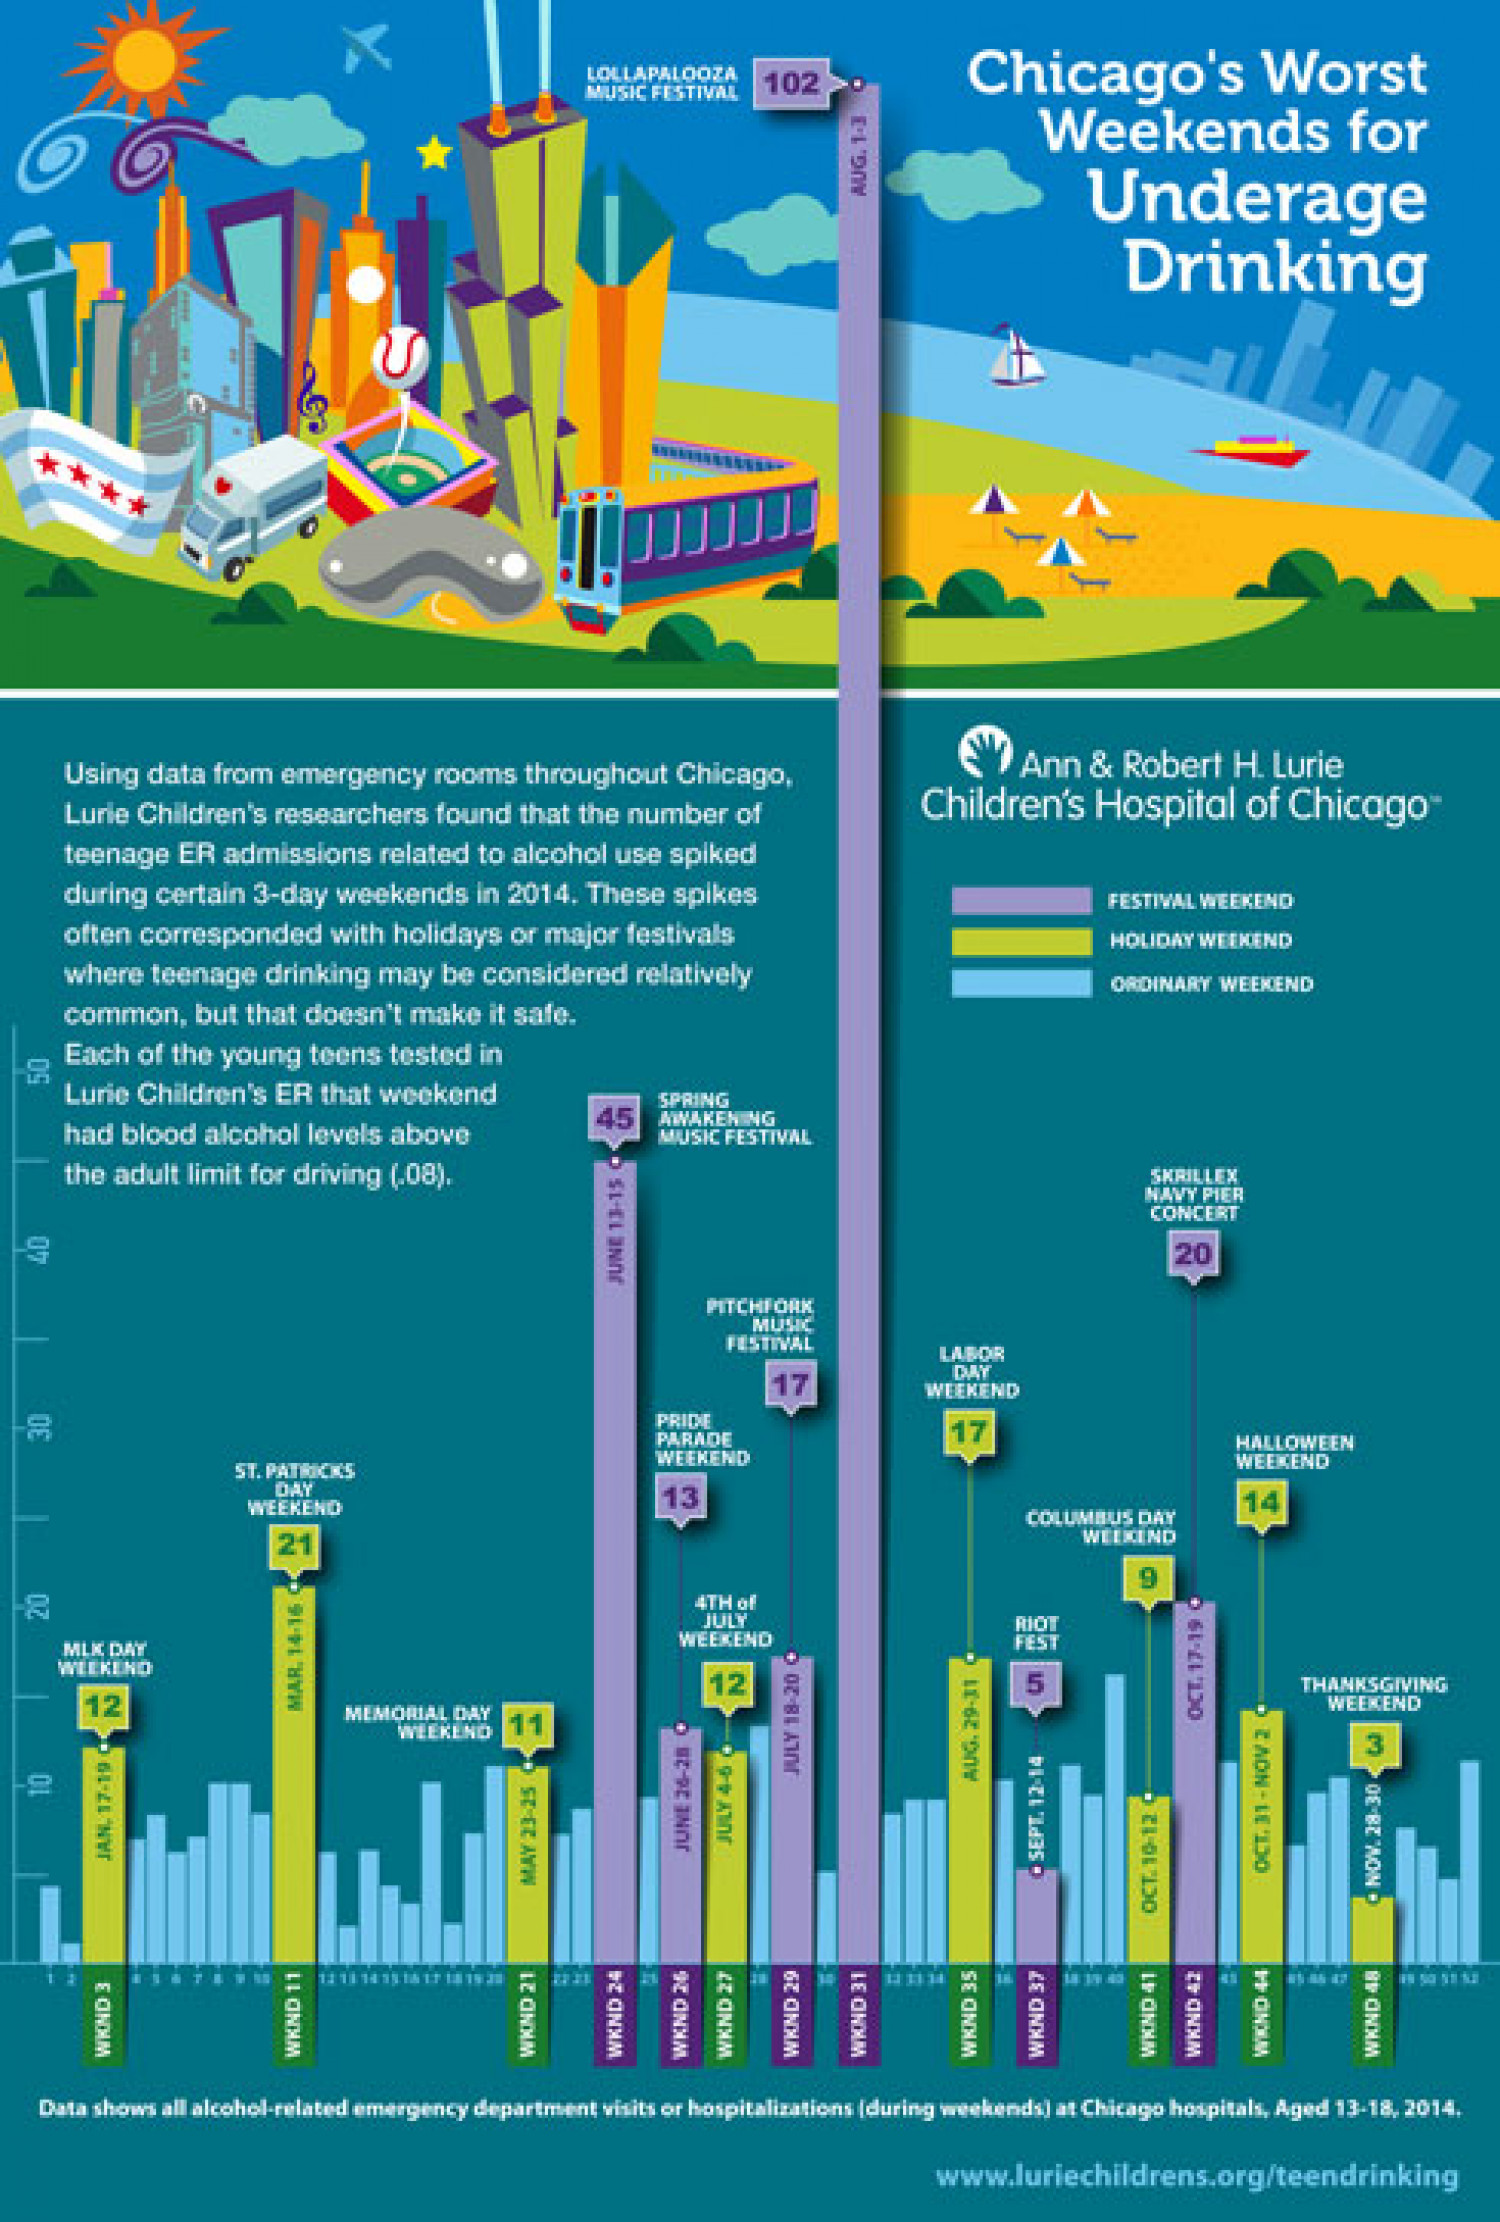 Chicago's Worst Weekends for Underage Drinking Infographic